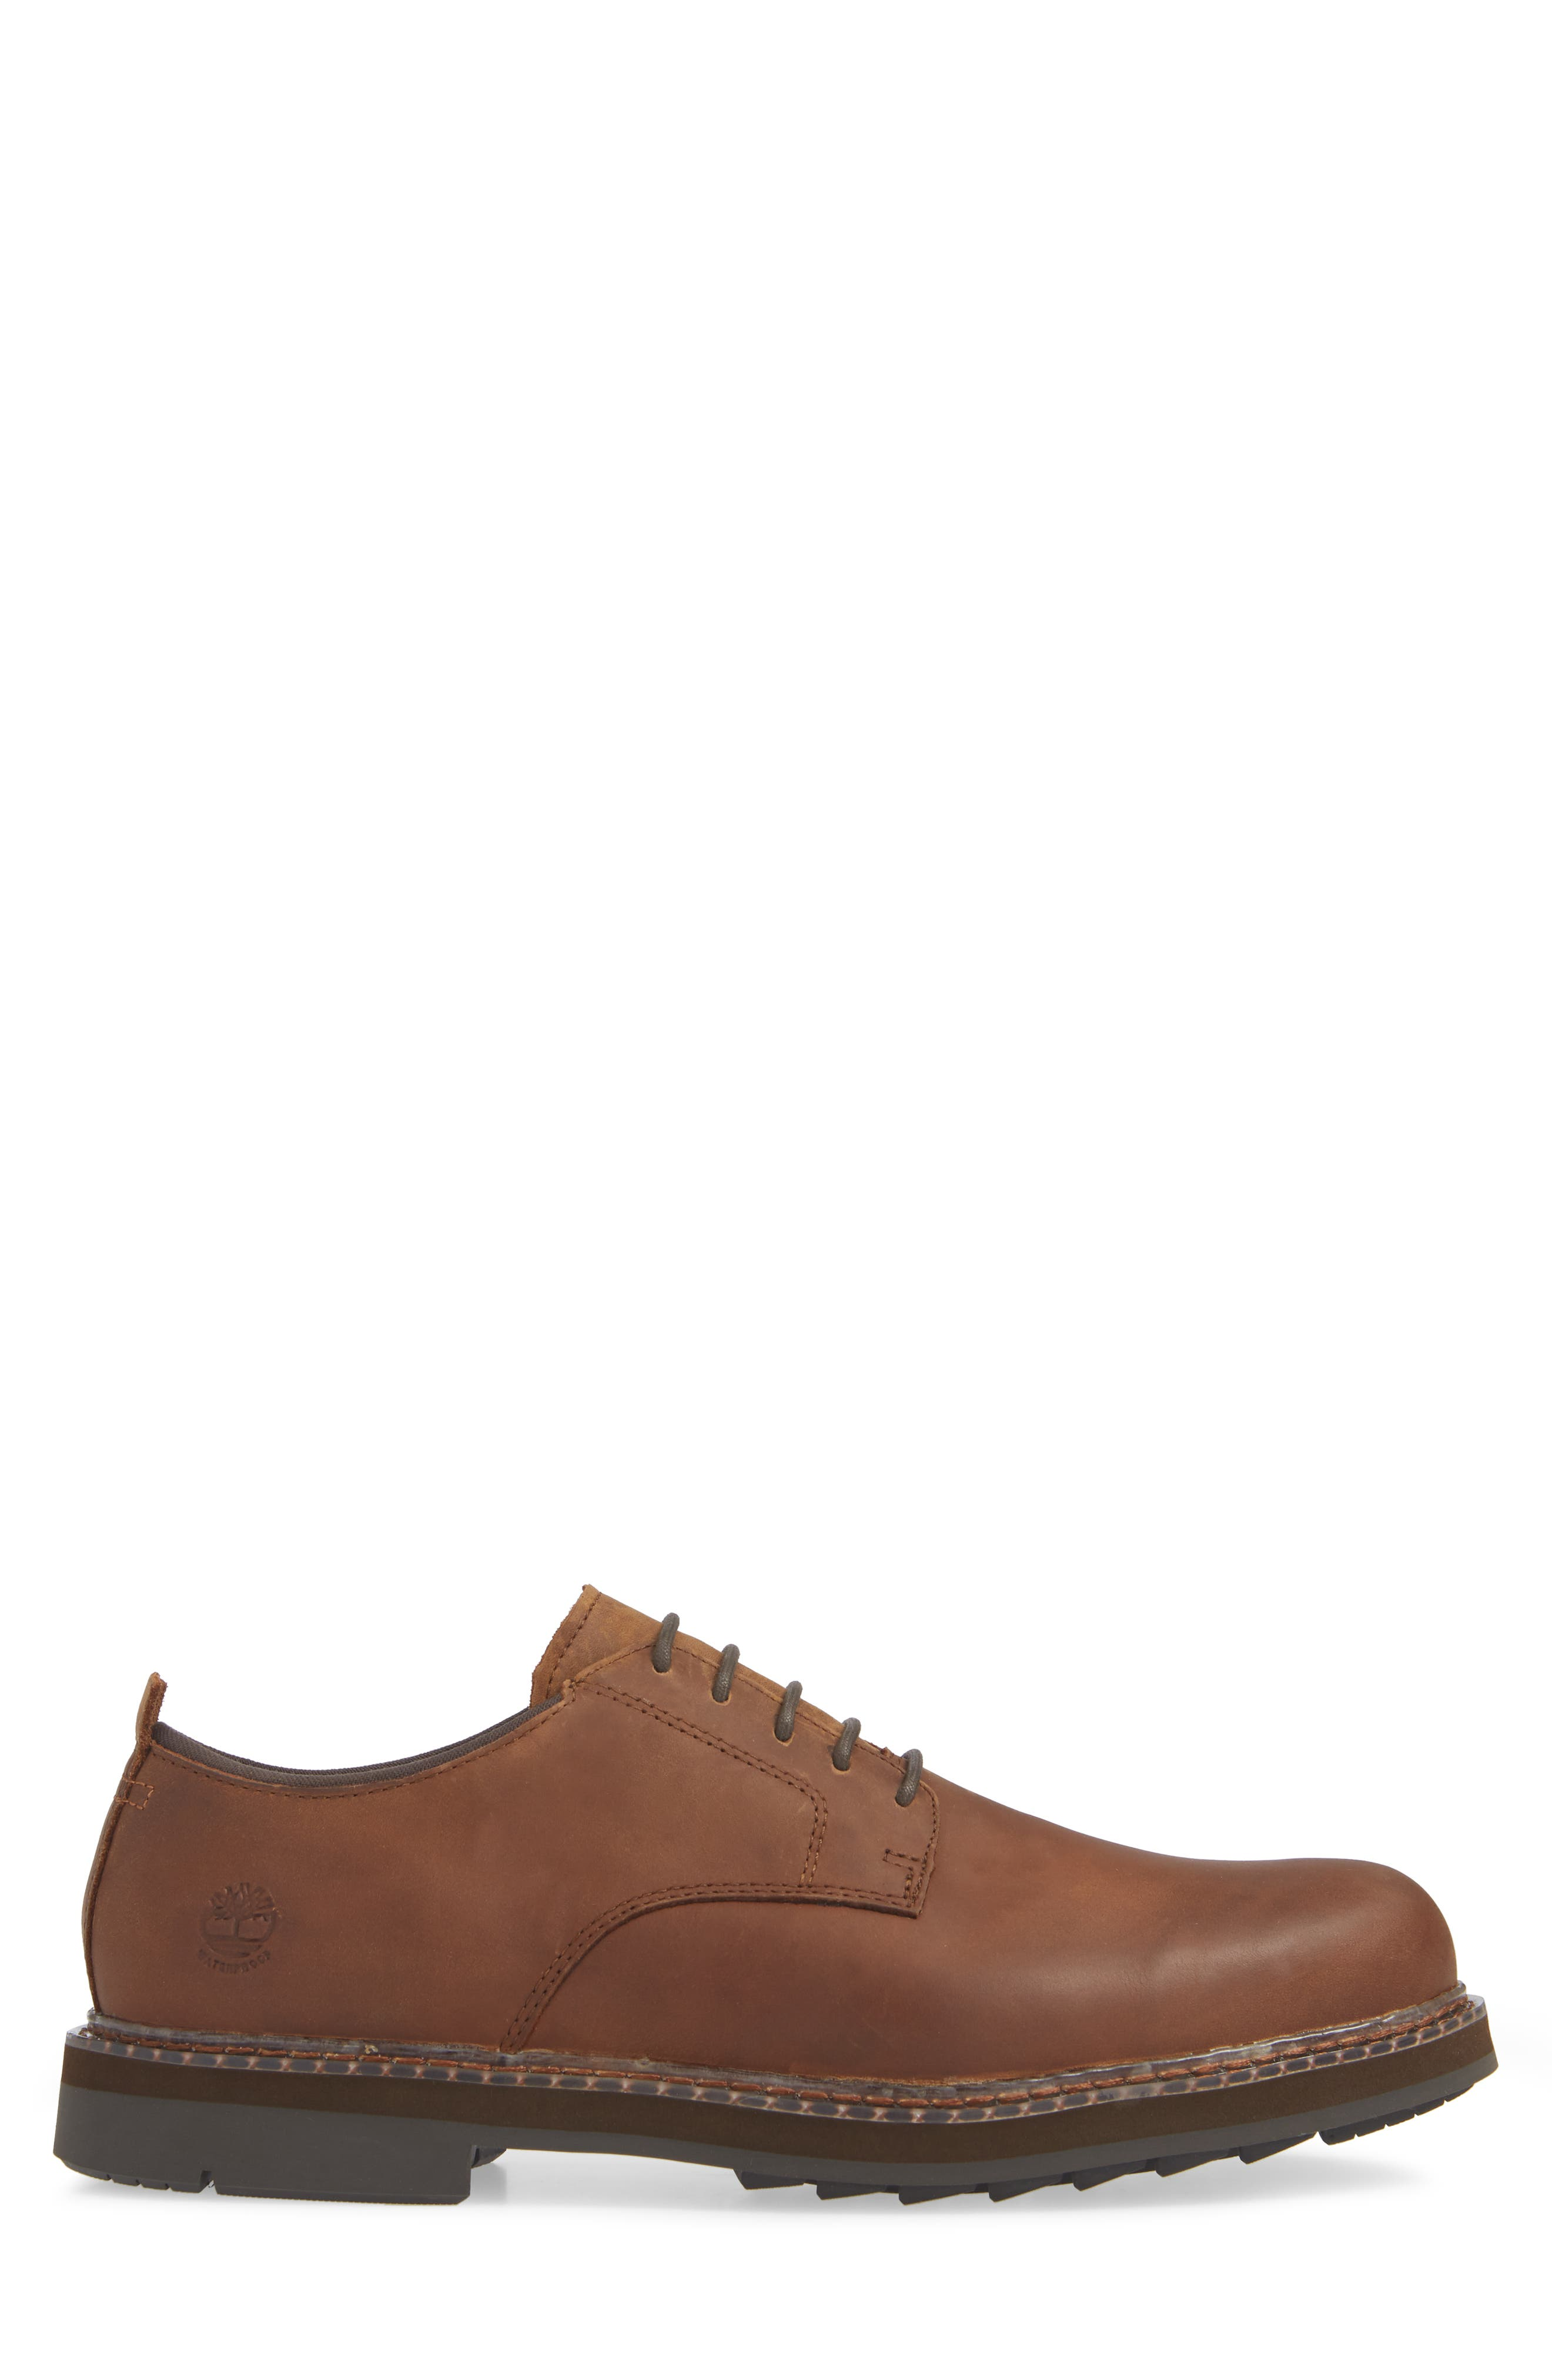 Squall Canyon Waterproof Plain Toe Derby,                             Alternate thumbnail 3, color,                             COPPER LEATHER